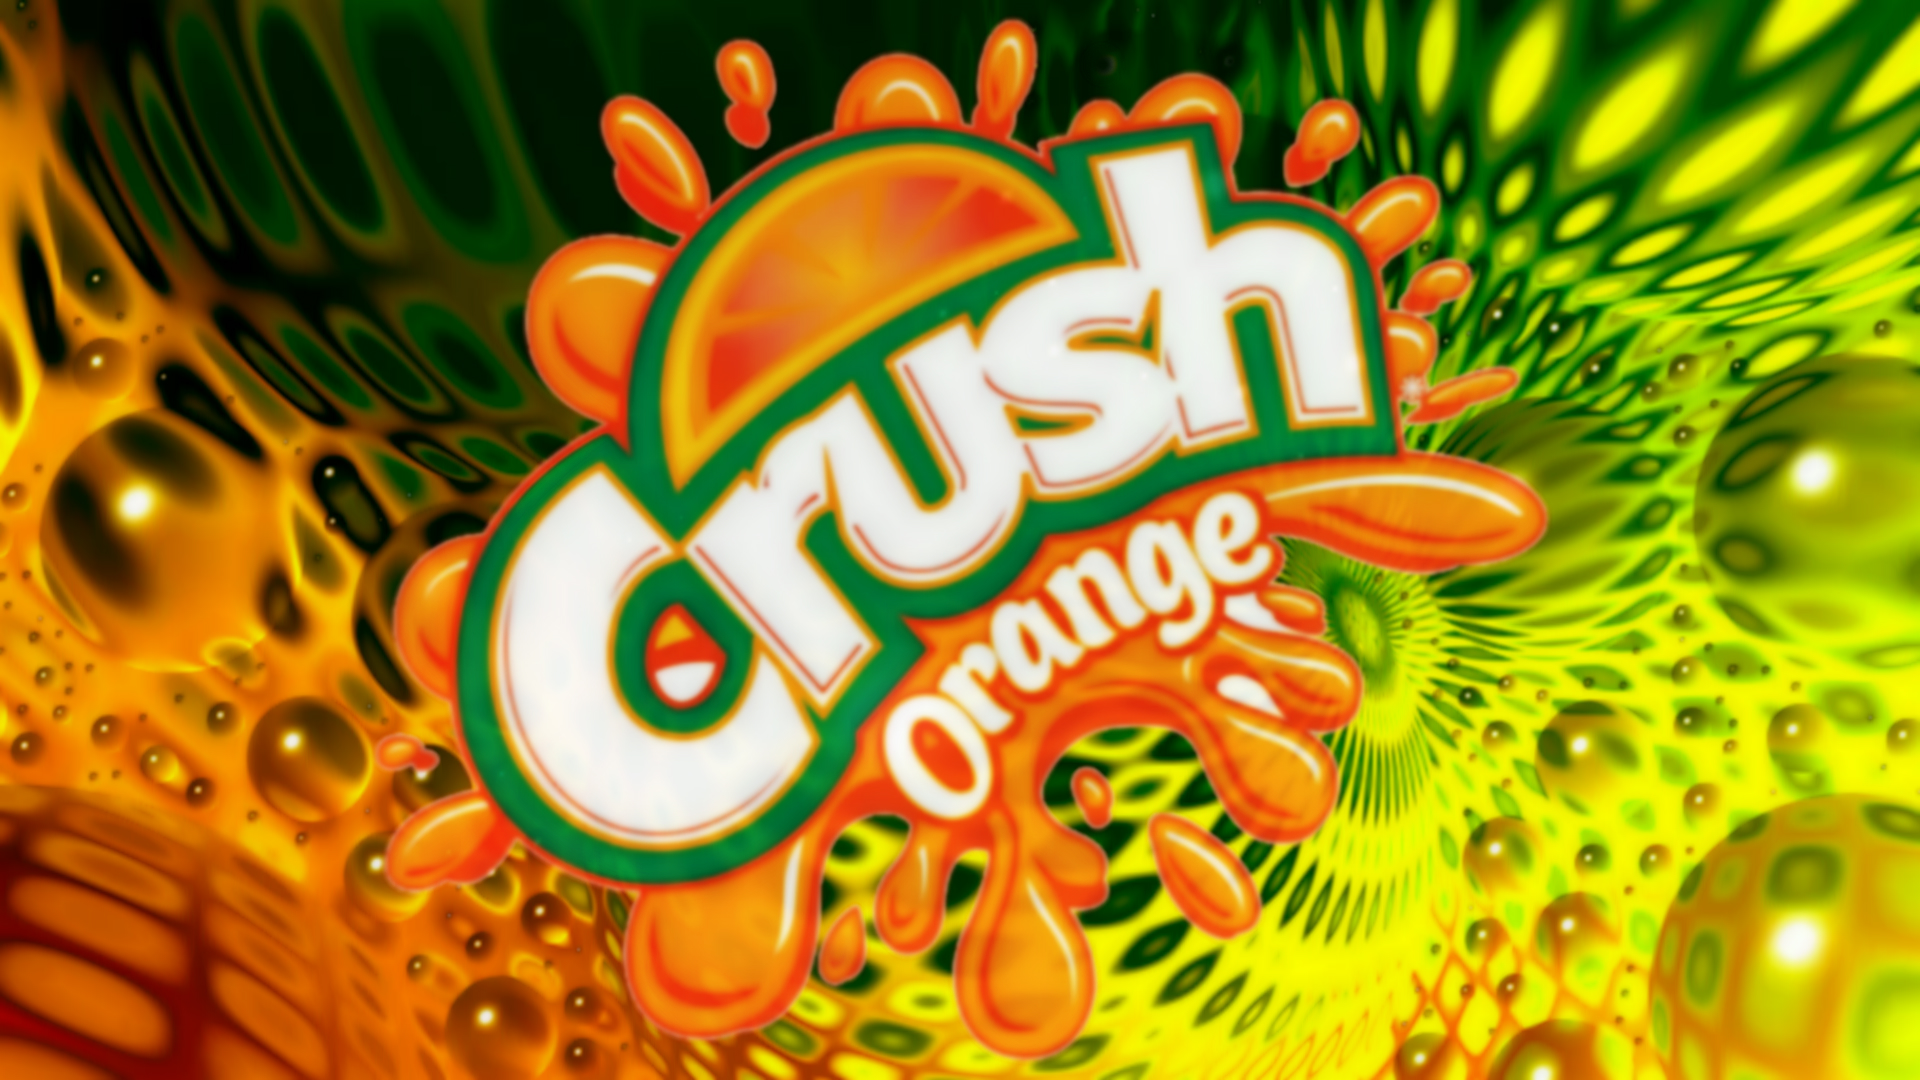 1 Orange Crush Hd Wallpapers Backgrounds Wallpaper Abyss HD Wallpapers Download Free Images Wallpaper [1000image.com]